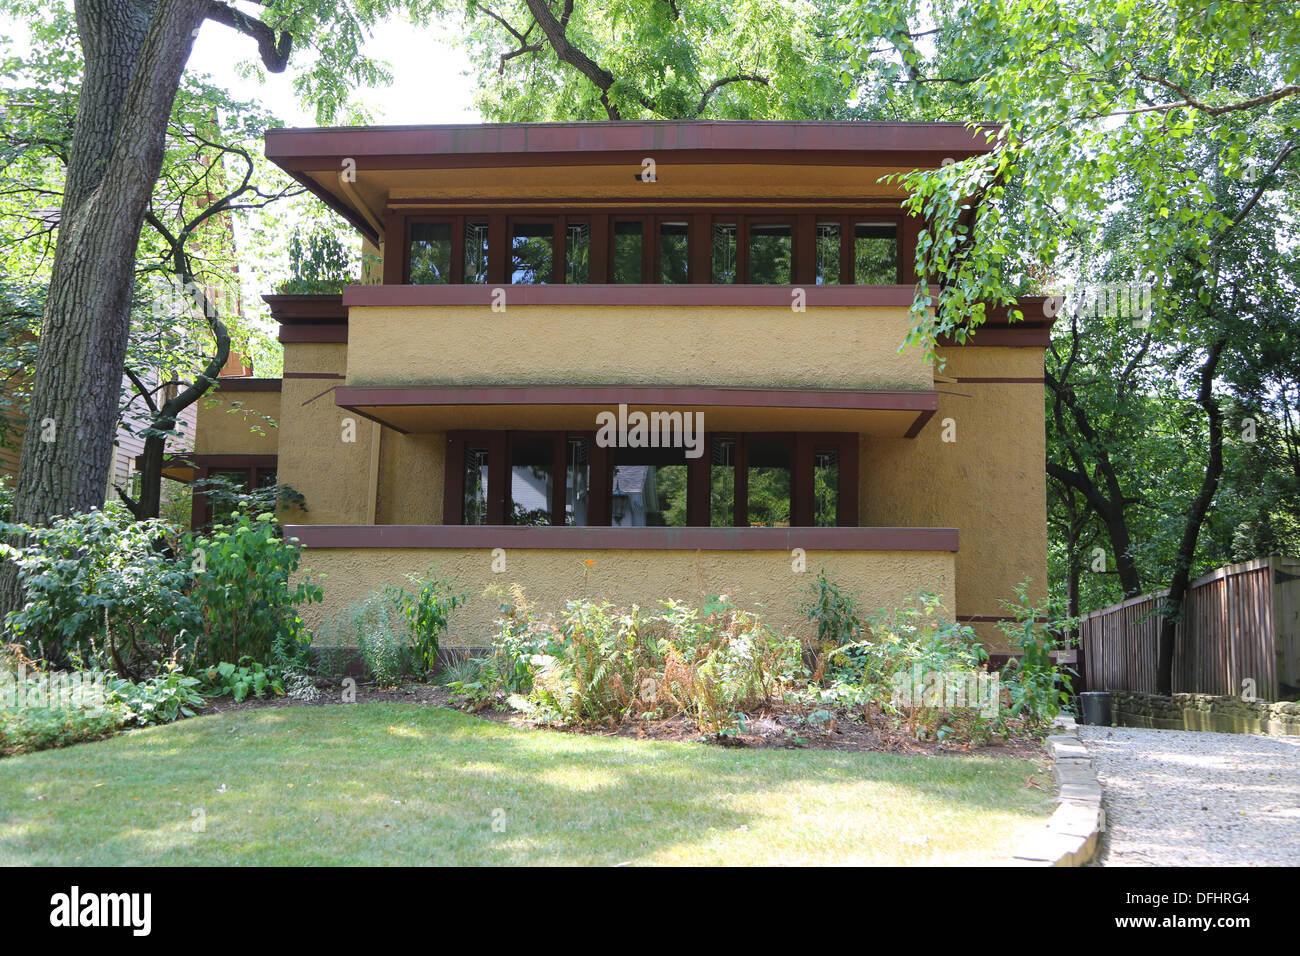 Frank lloyd wright style houses affordable frederick c for Frank lloyd wright stile prateria